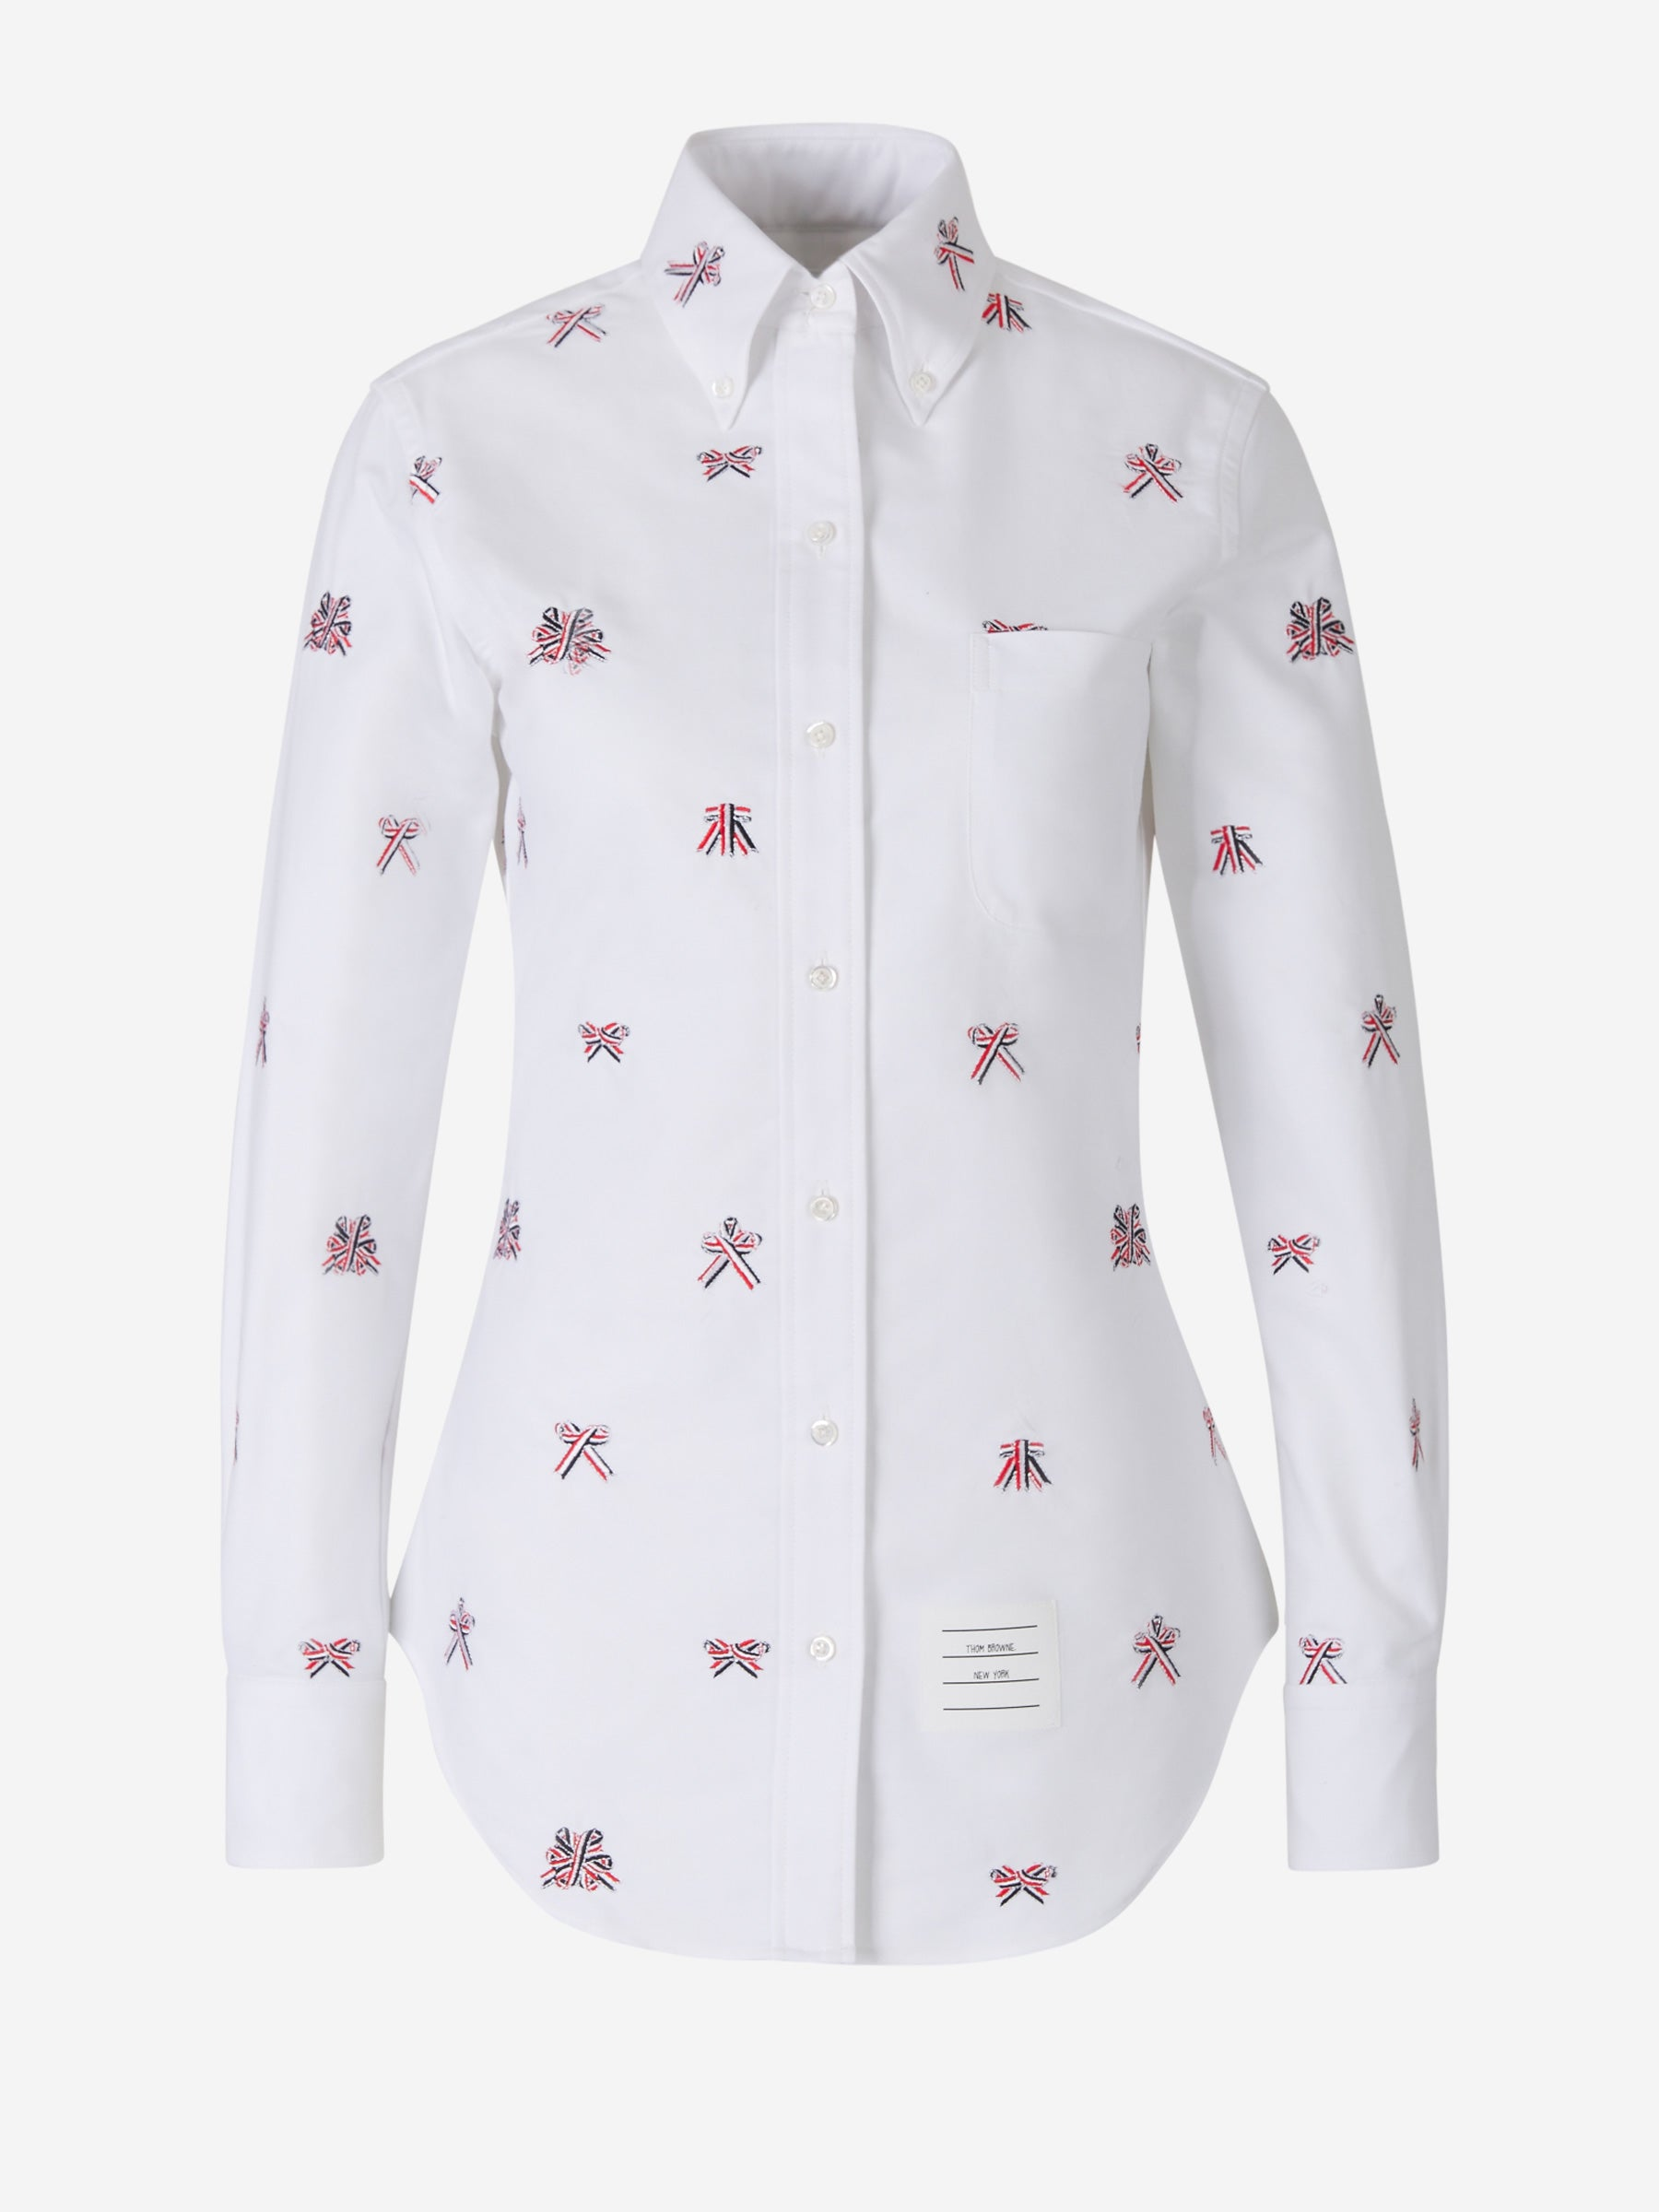 Thom Browne Bows Embroidered Oxford Shirt In White